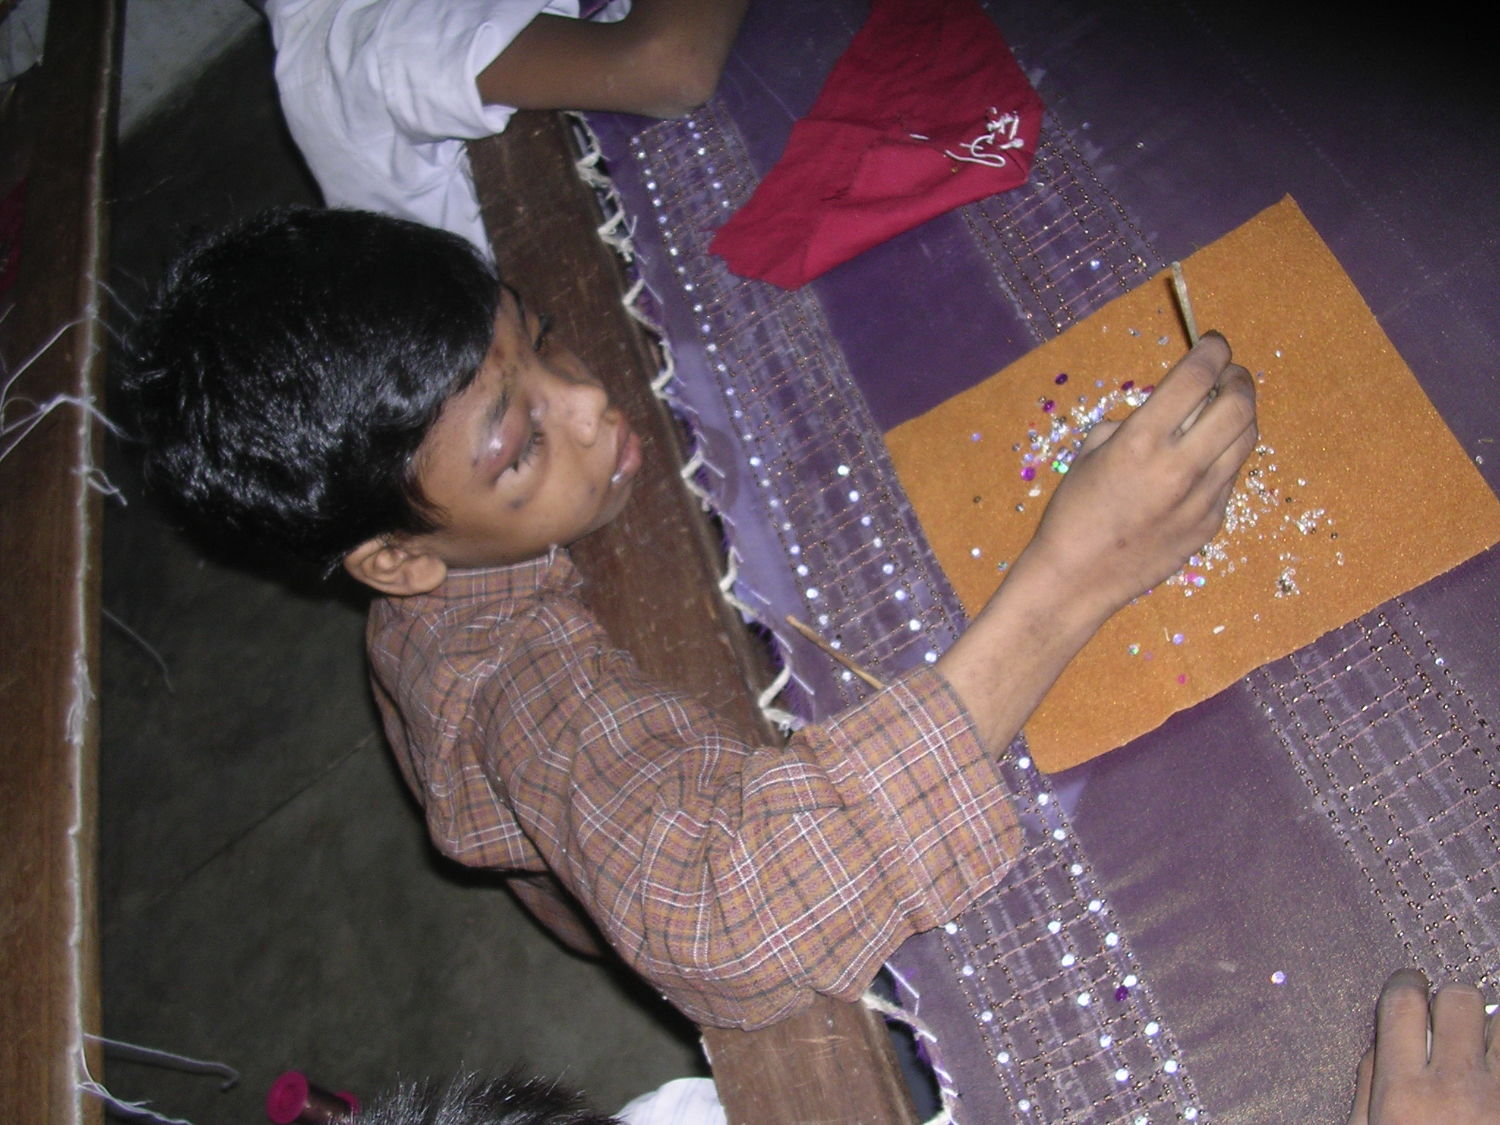 child labour free photos and lets make the world child labour free ...